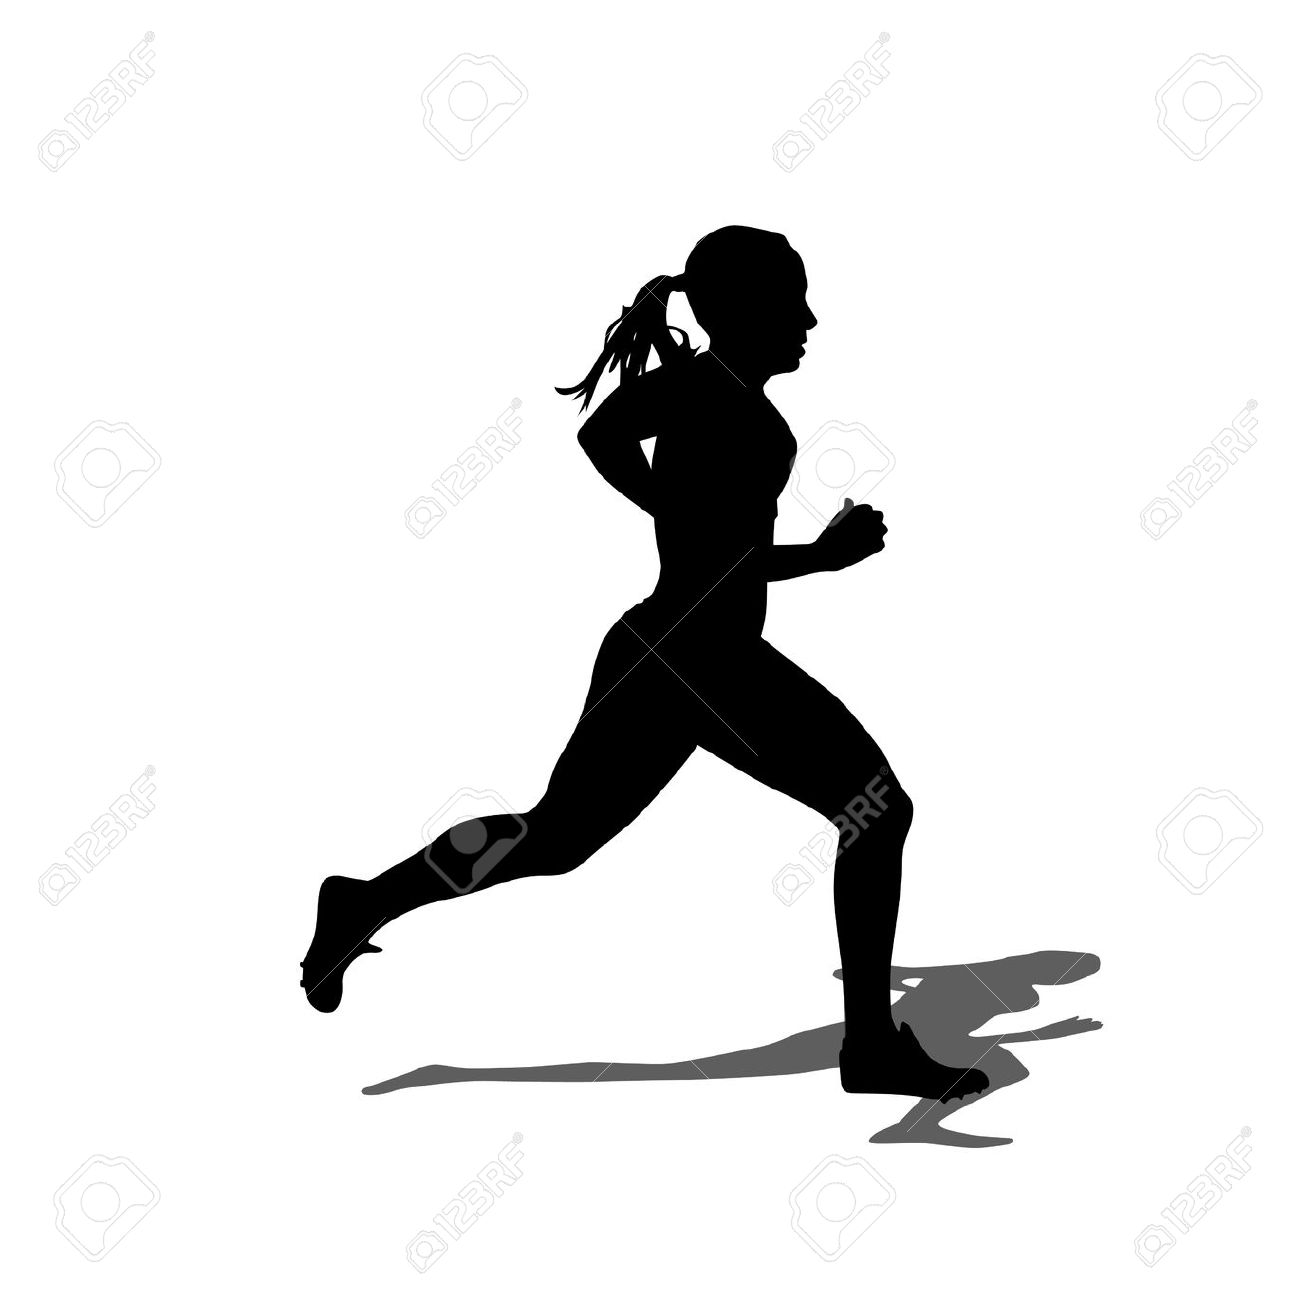 1300x1300 Marathon Runner Silhouette Images, Stock Pictures, Royalty Free